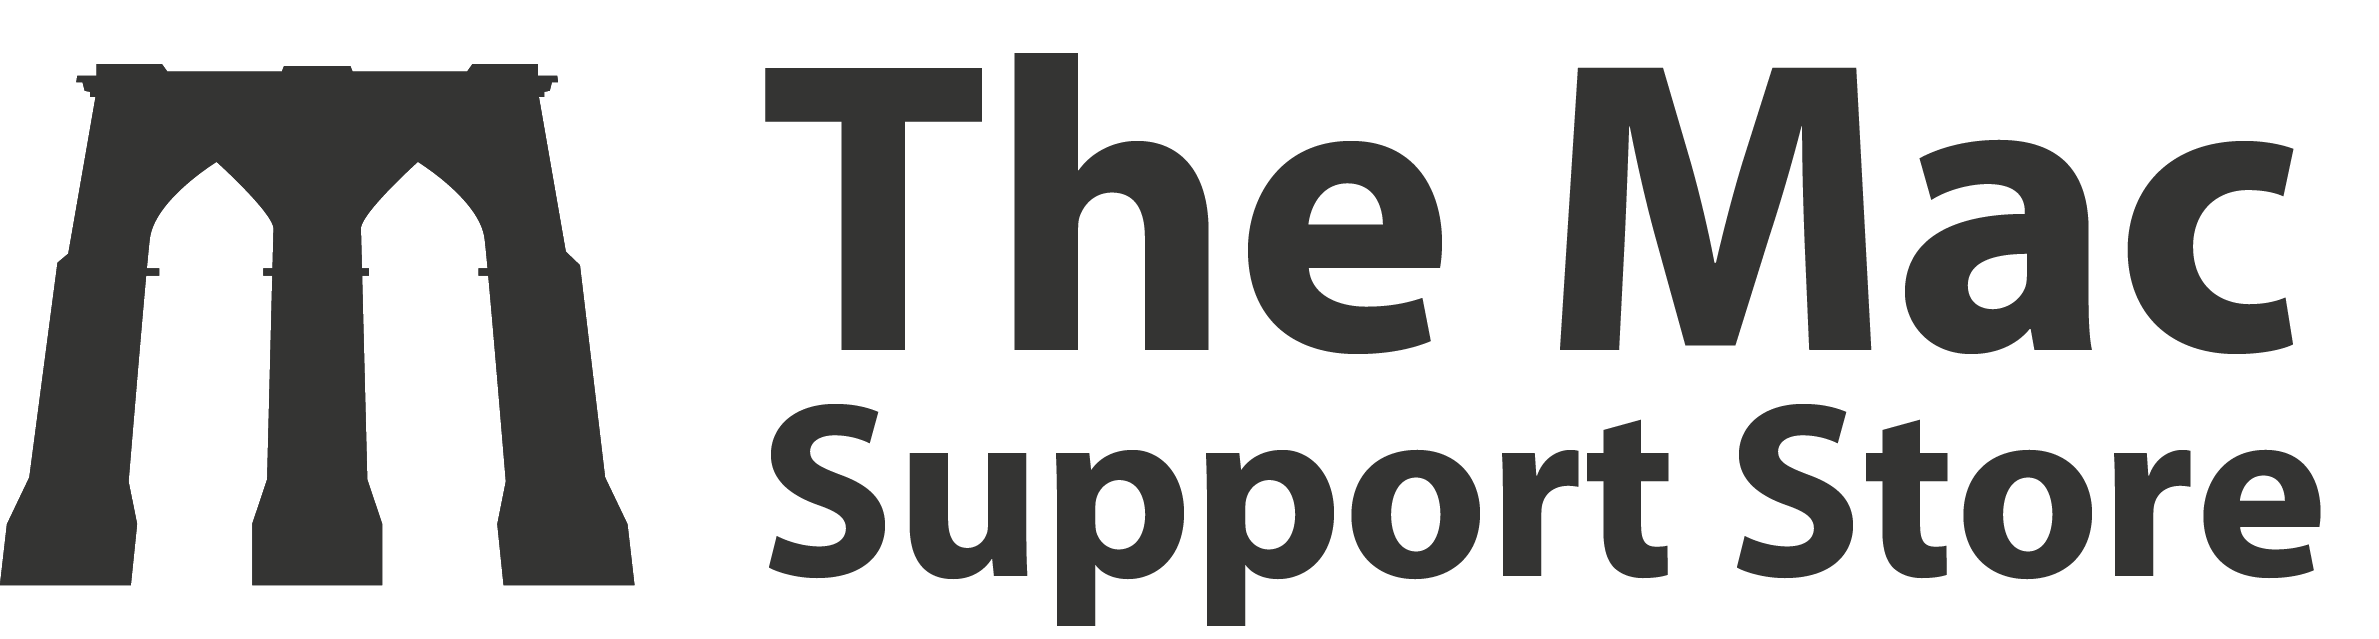 macsupportstore Logo